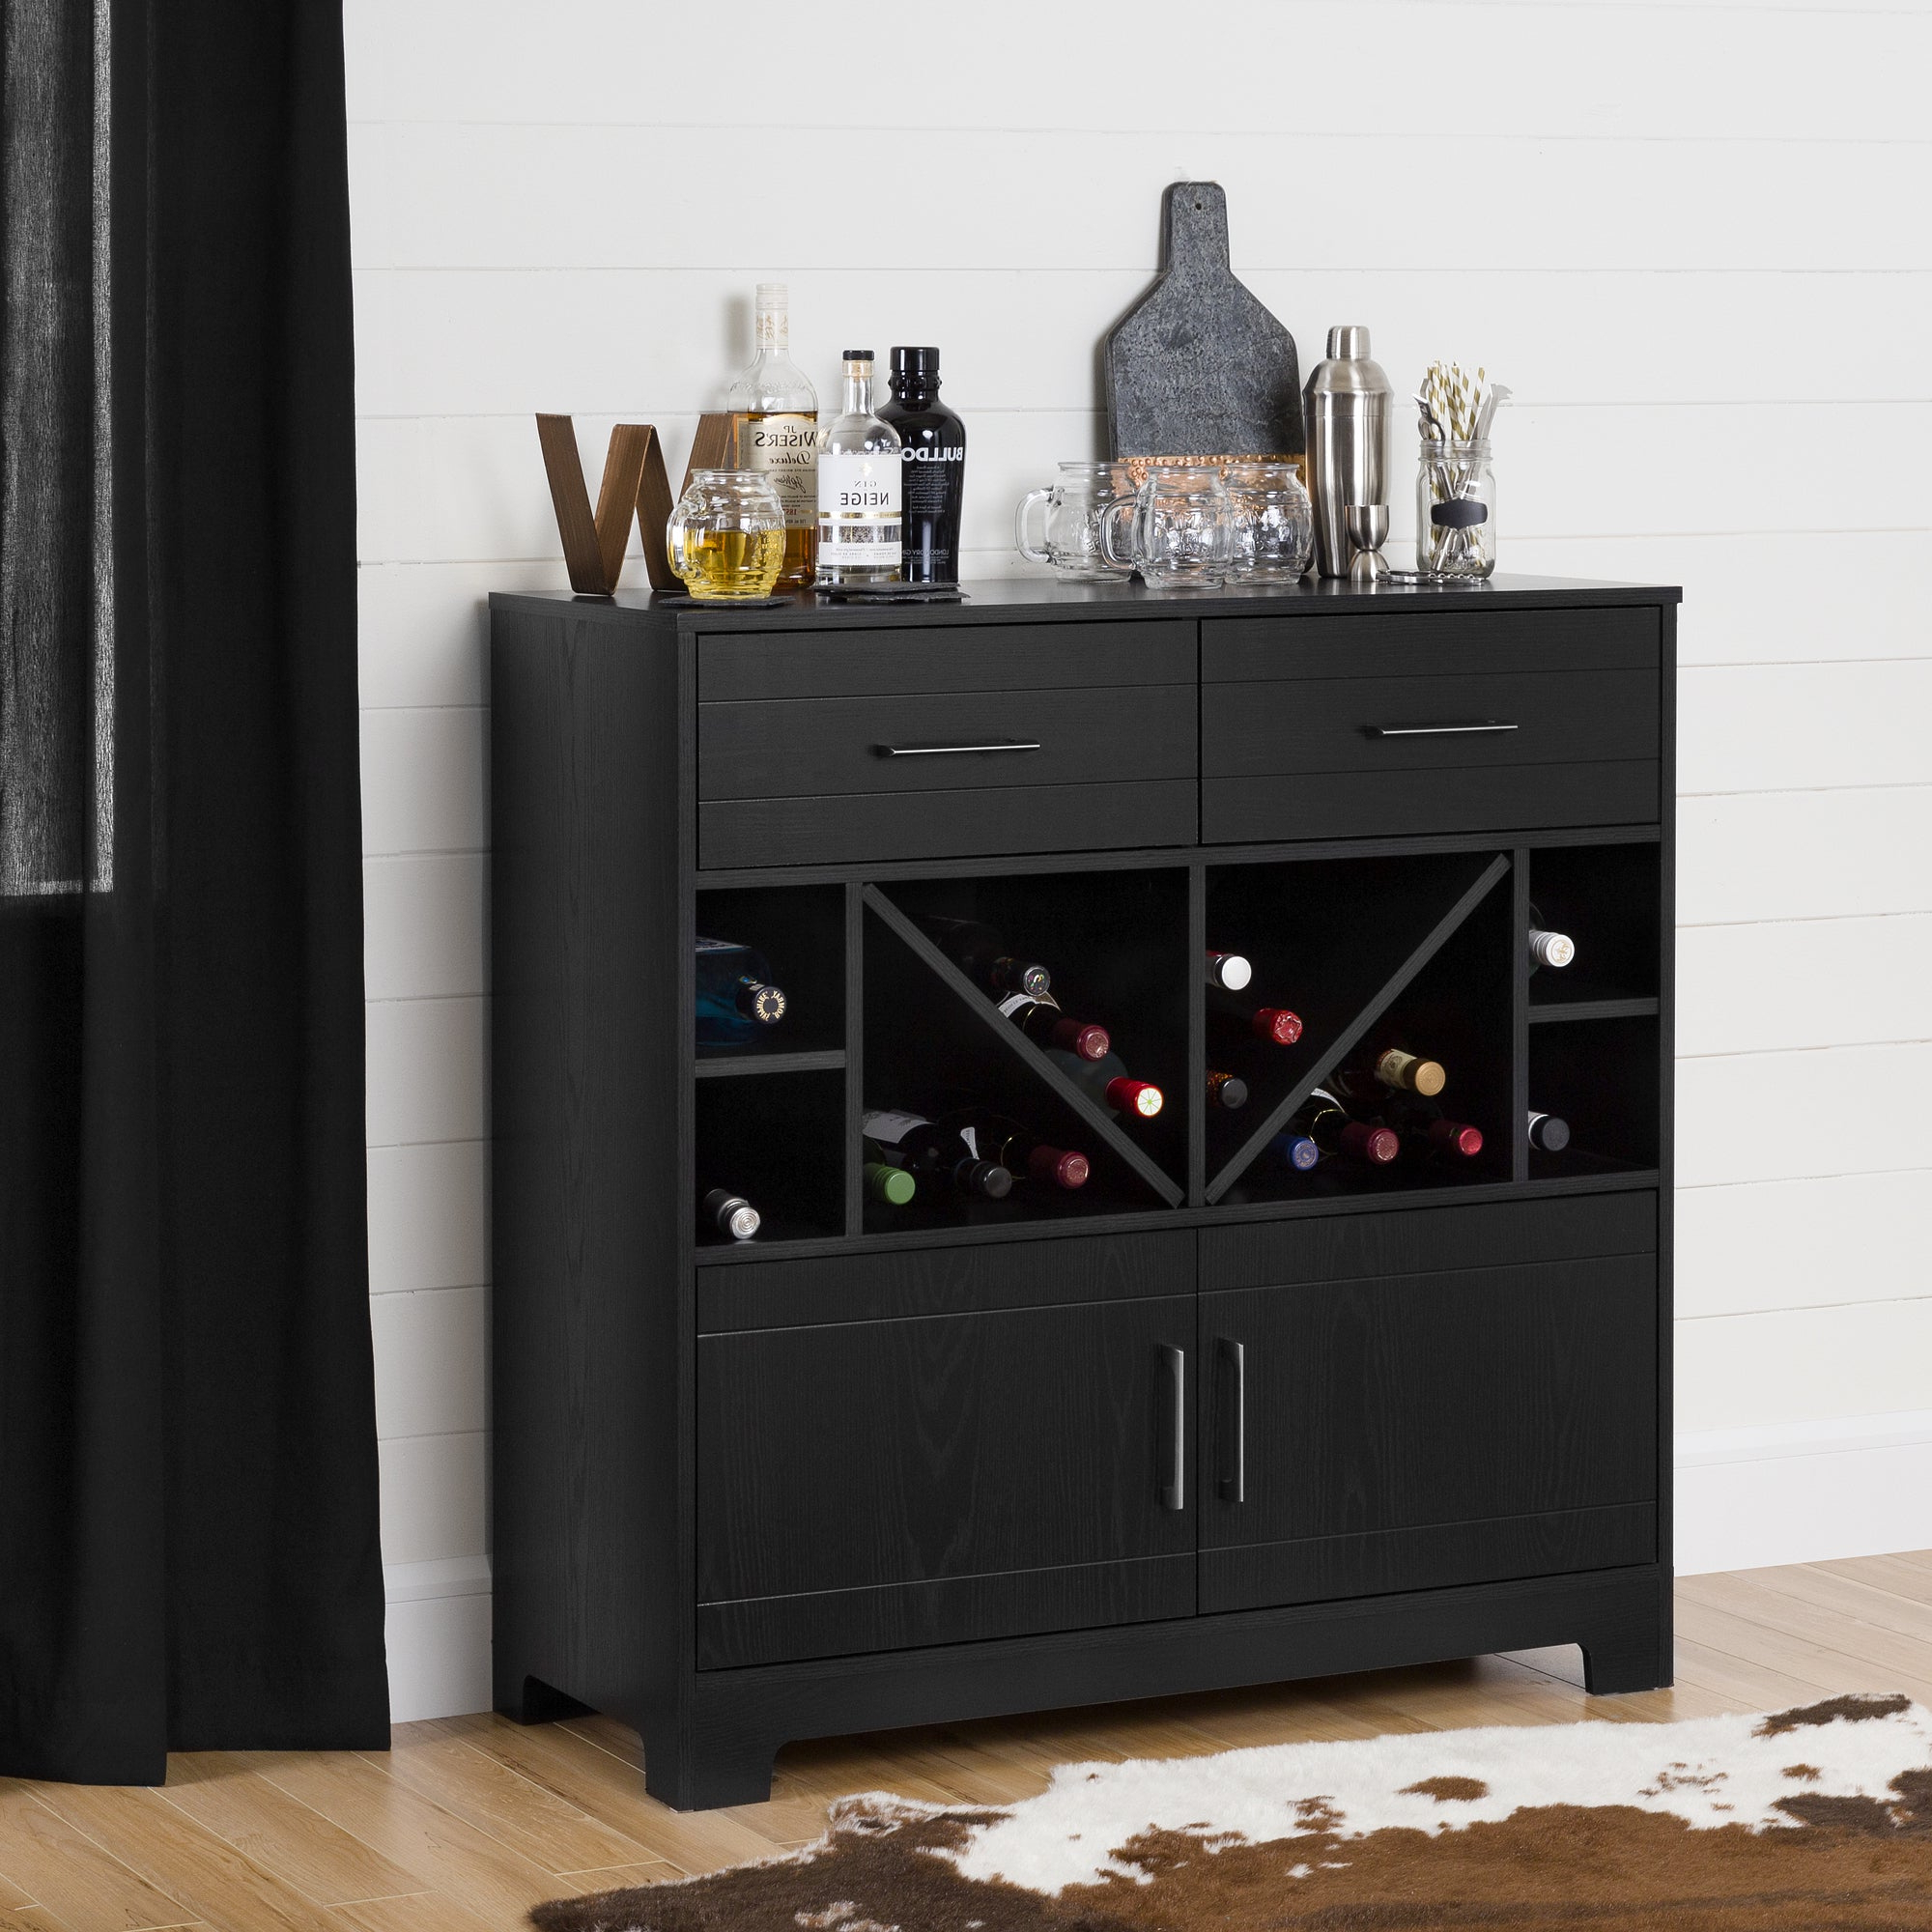 Buy Wine Bottle Storage South Shore Furniture Buffets With Buffets With Bottle And Glass Storage (View 3 of 20)